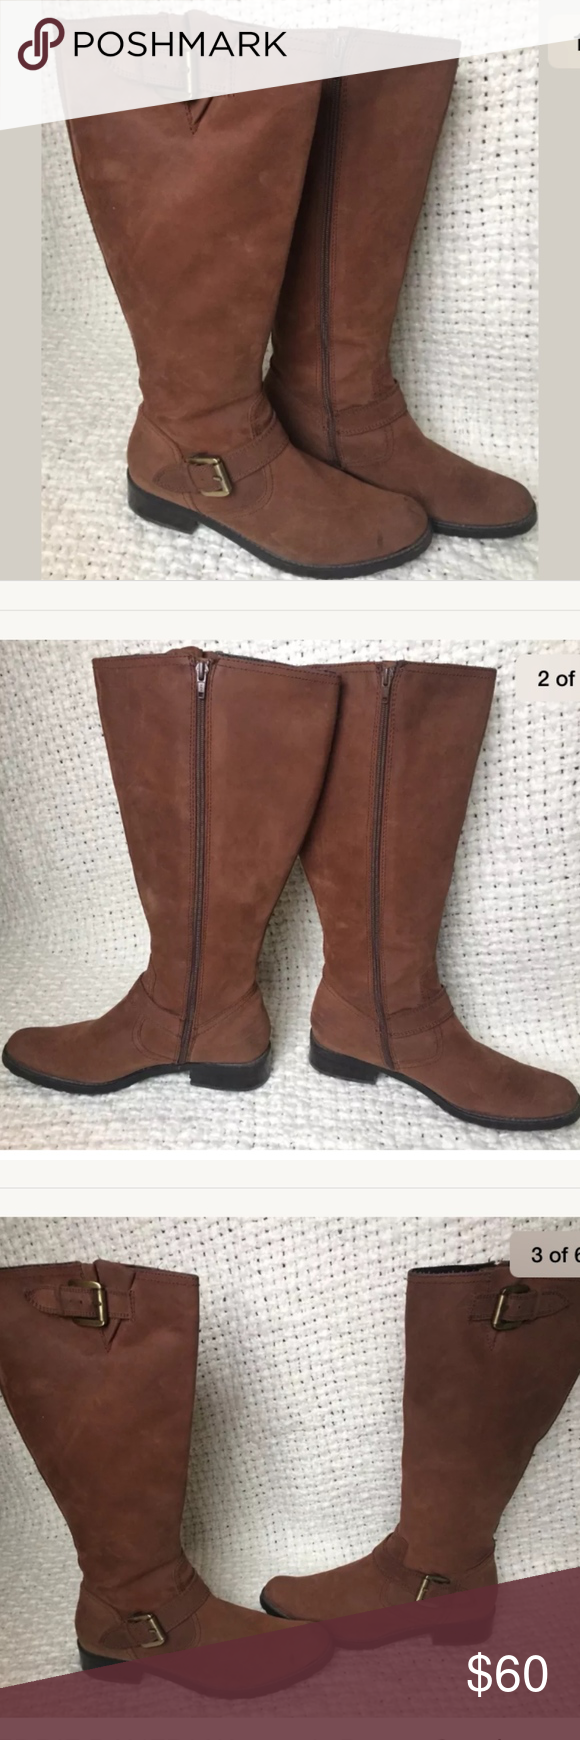 """EDDIE BAUER Brown Leather Riding Boots 9.5 WIDE Gently worn WIDE calf brown suede/leather riding boots from Eddie Bauer. No wear on outside minus minor mark shown in picture. No stains! No box available or included. Item comes from a smoke free home.  Heel: approx 1.5""""  Flat across opening: 8.5""""  Total height: 17"""" Eddie Bauer Shoes Ankle Boots & Booties"""